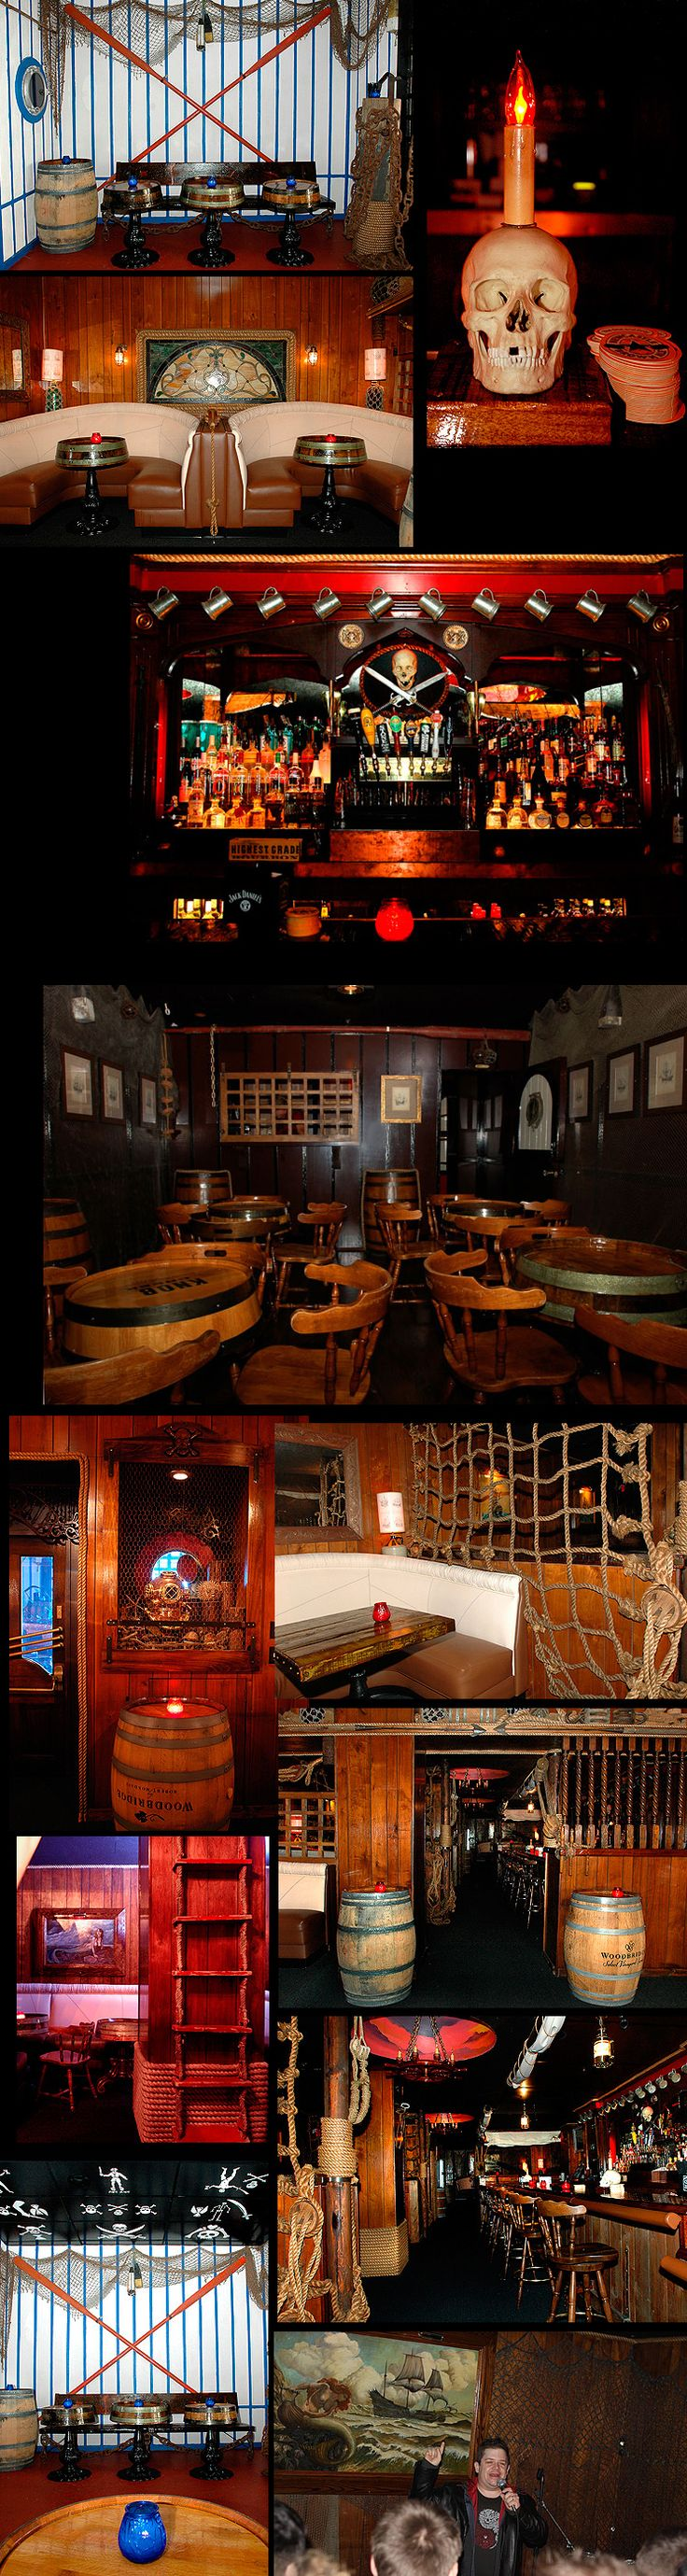 21 best Pirate Bar images on Pinterest